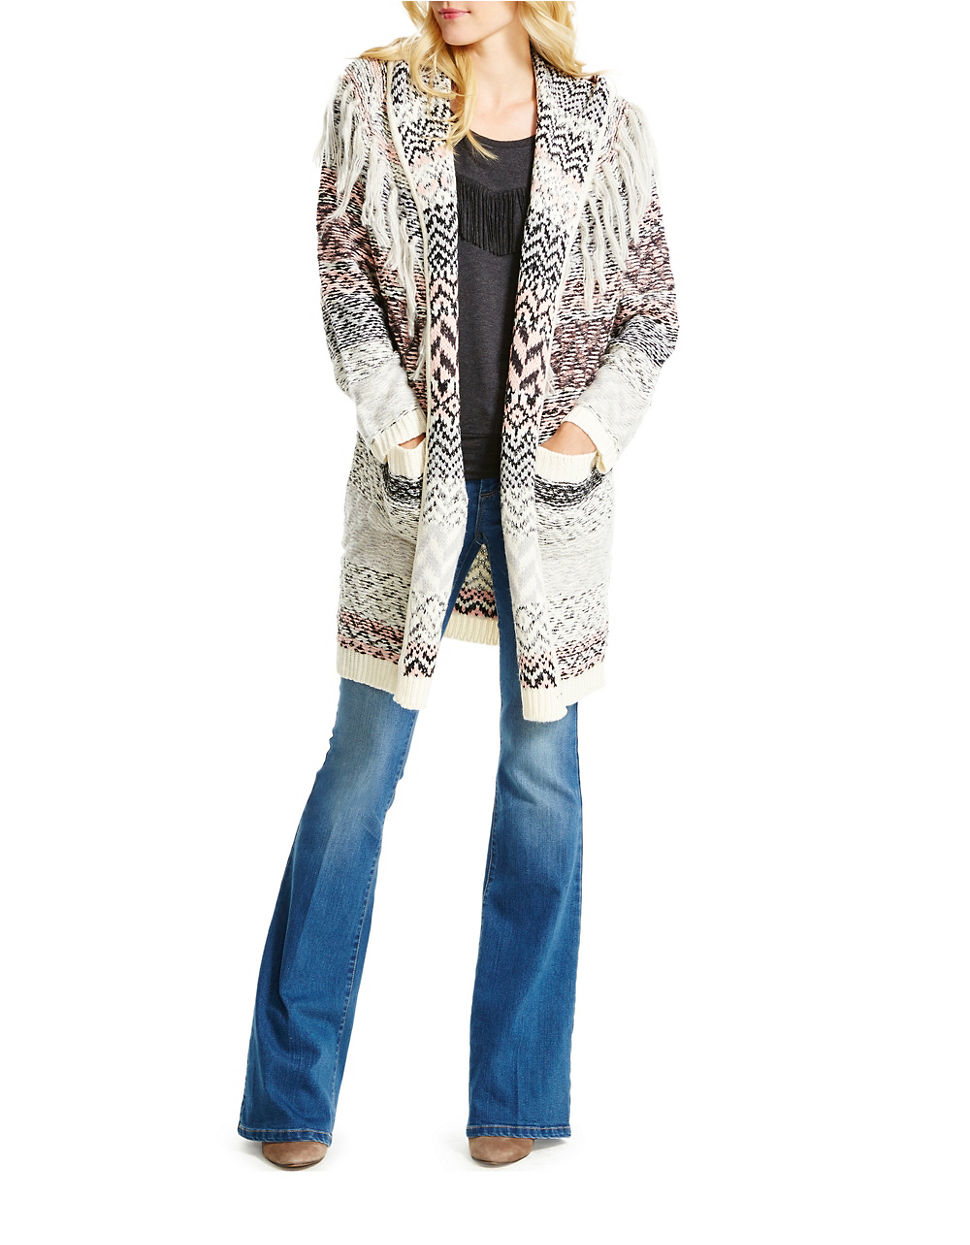 Jessica simpson Thistle Cozy Hooded Sweater Coat in Gray   Lyst